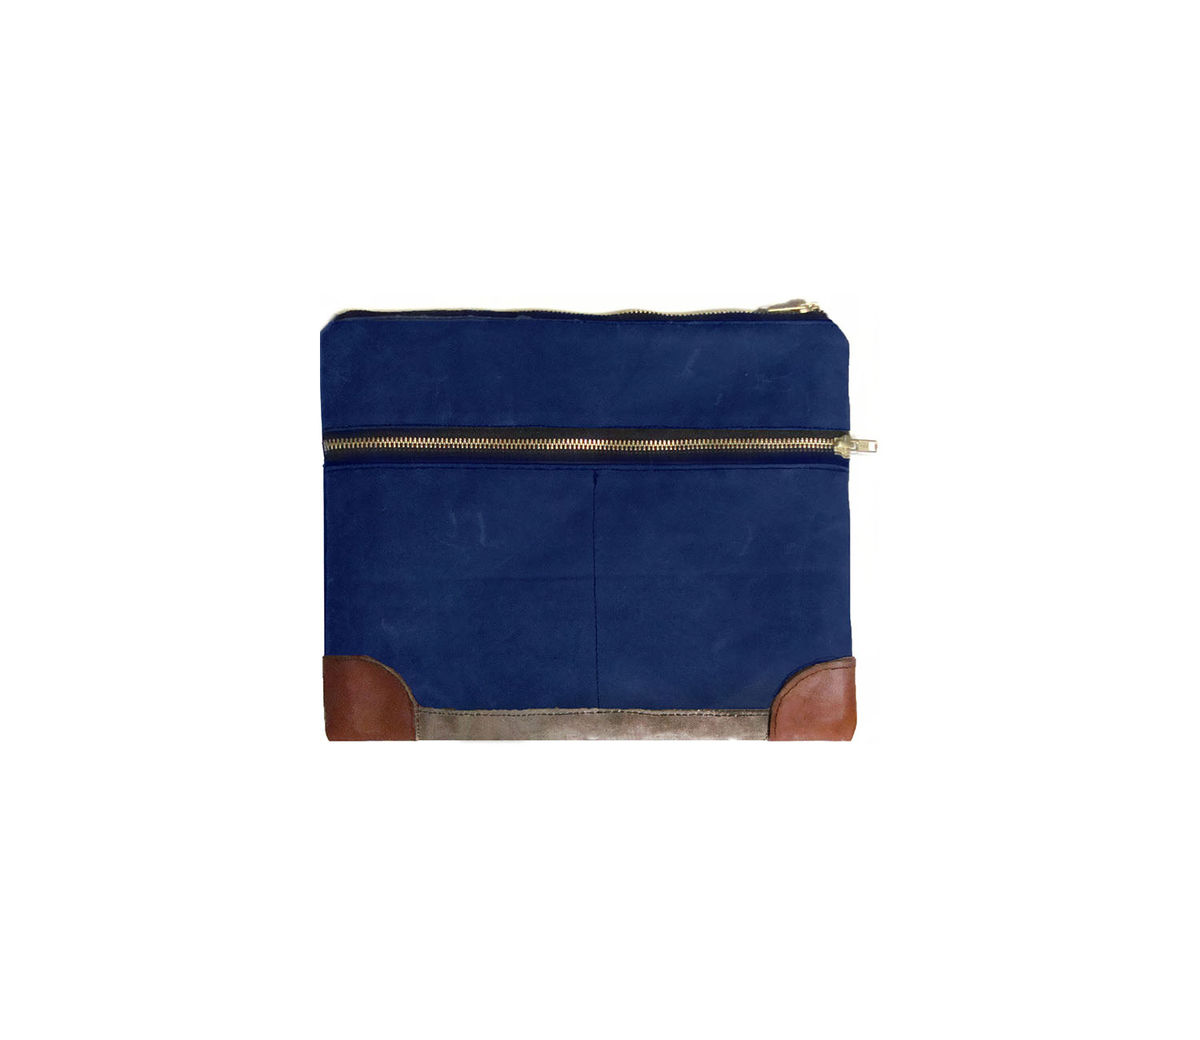 Everything iPad Case, Waxed Canvas, Leather, Custom Dyed in Sailor Blue - product images  of